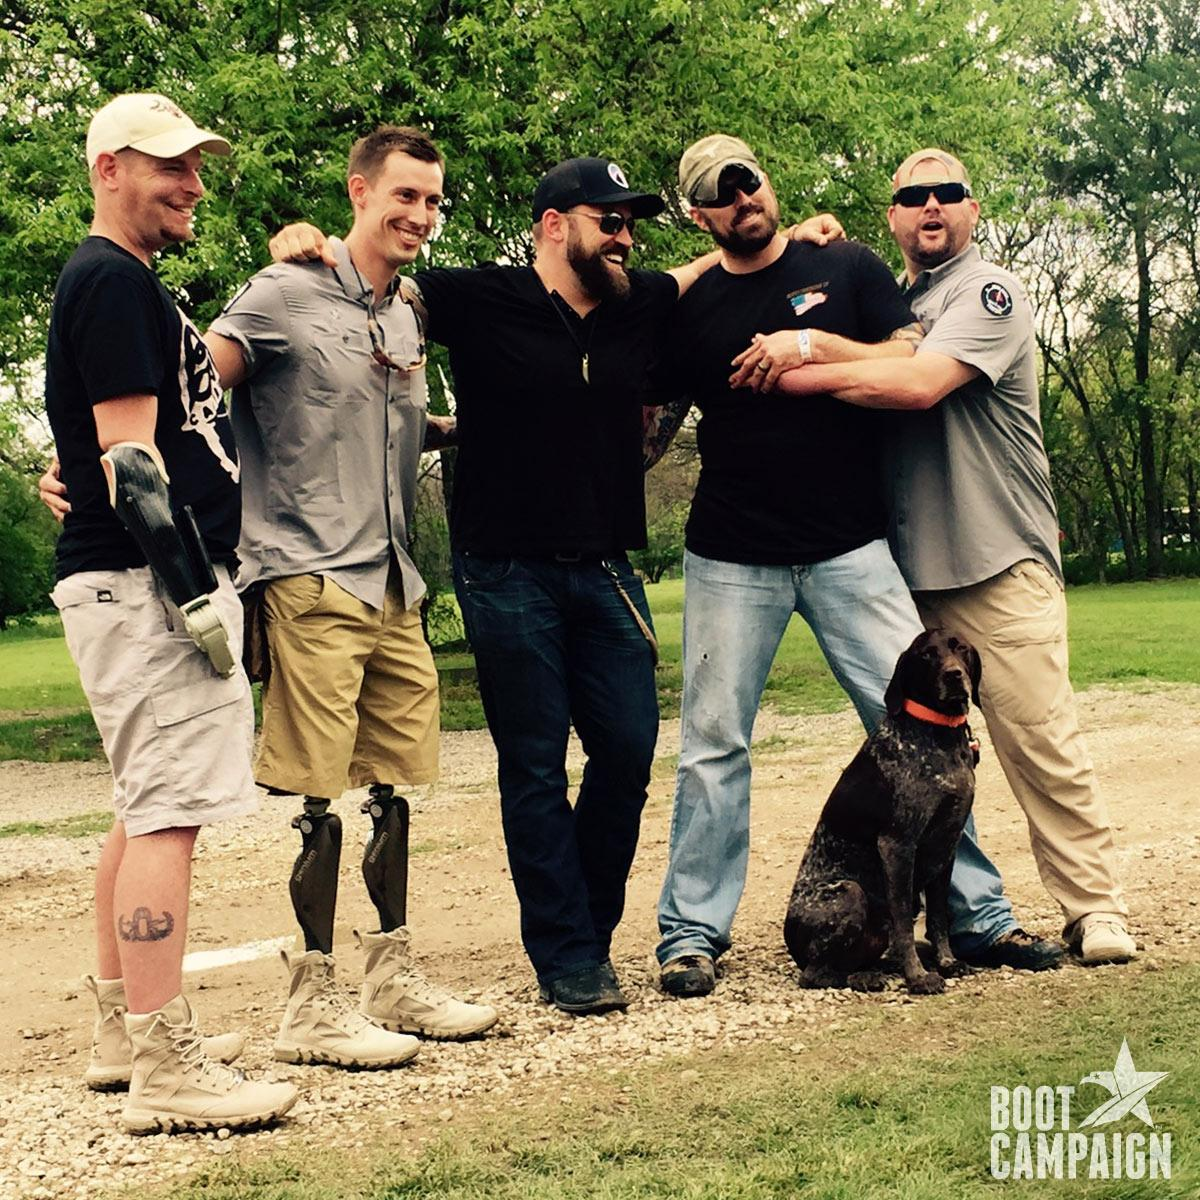 """Boot Campaign on Twitter: """"Marcus Burleson, @Johnny_Joey ..."""